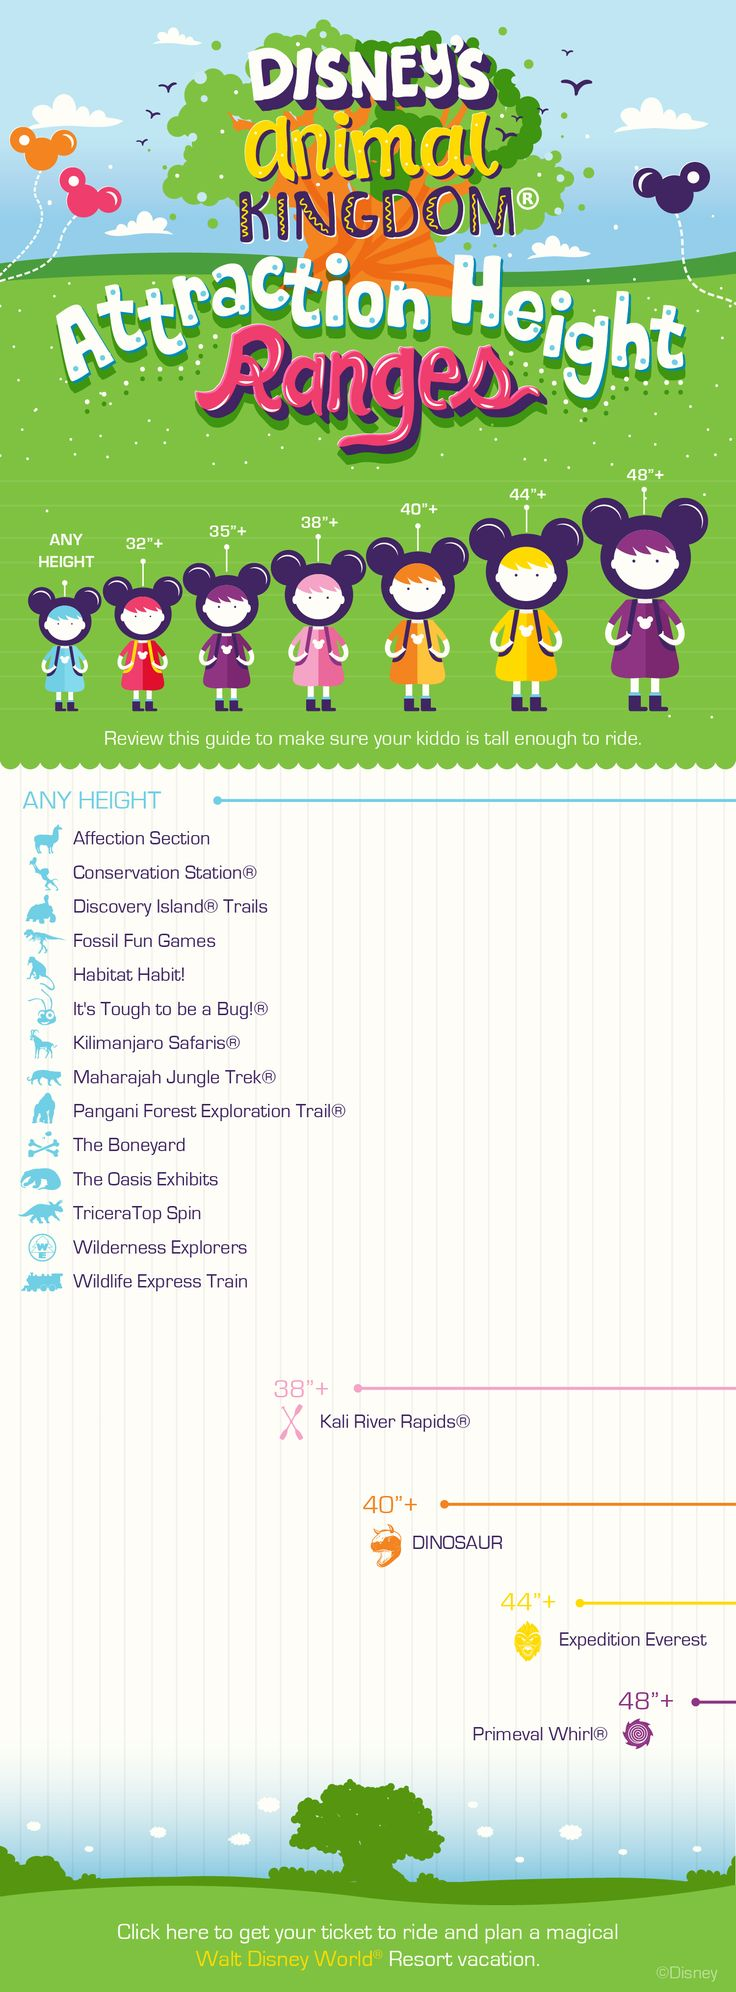 Disney's Animal Kingdom attraction height ranges for toddlers.